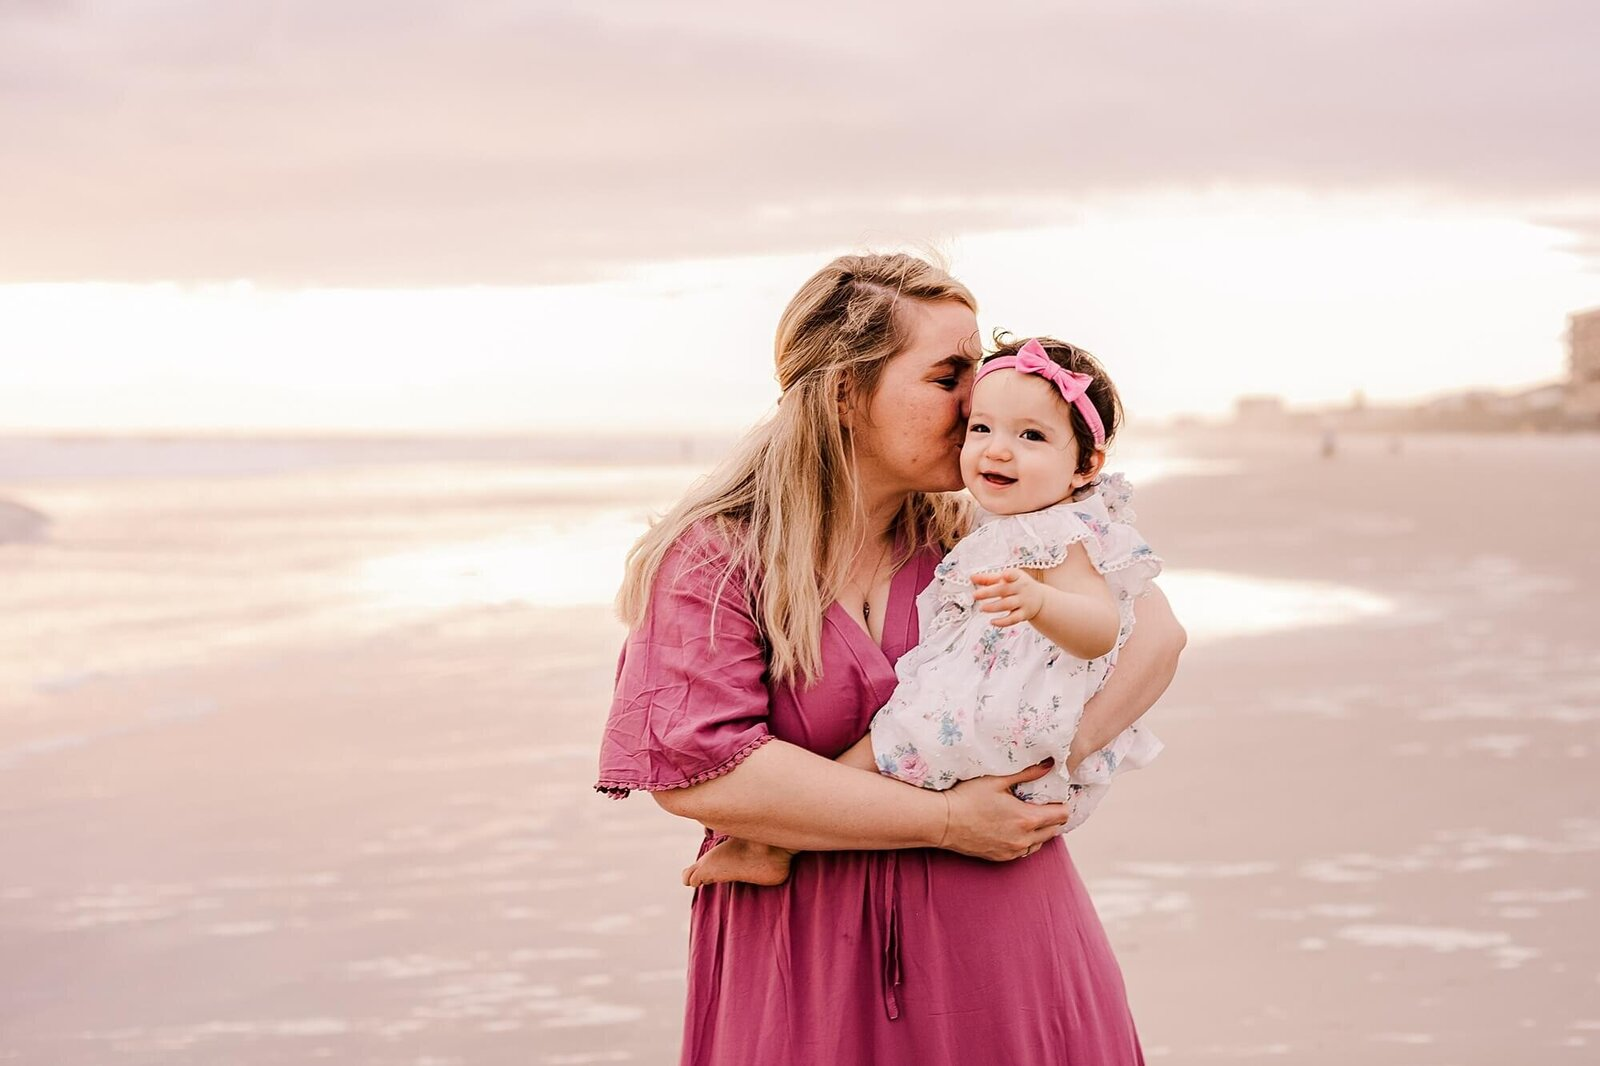 winterhaven-park-family-session-new-smyrna-beach-haleigh-nicole-photography_0025